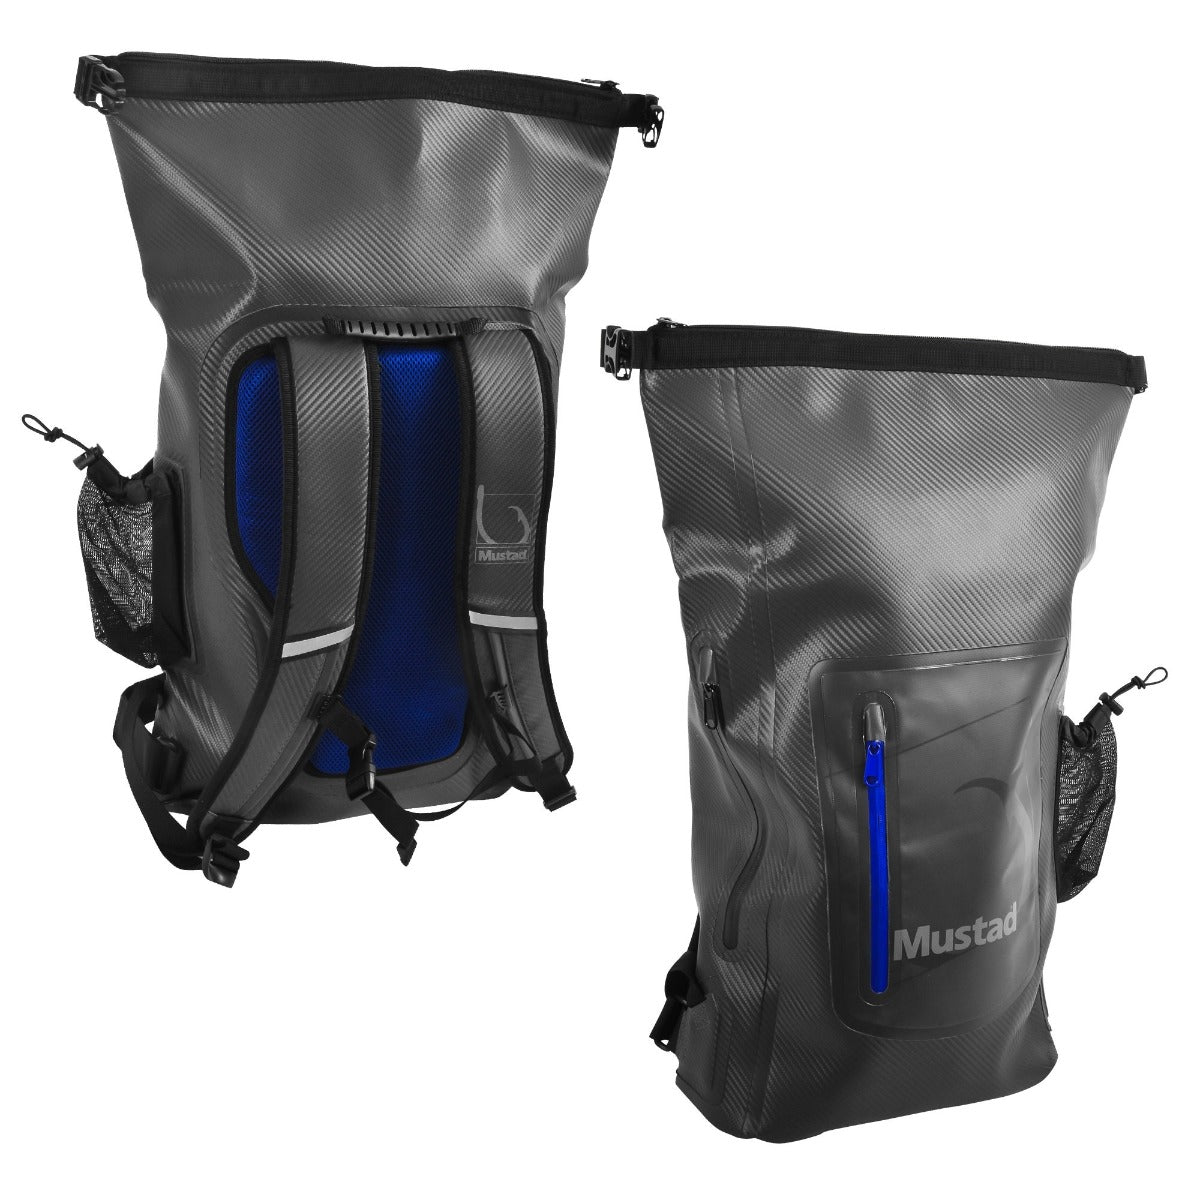 Mustad Dry Backpack 30 Litre Grey